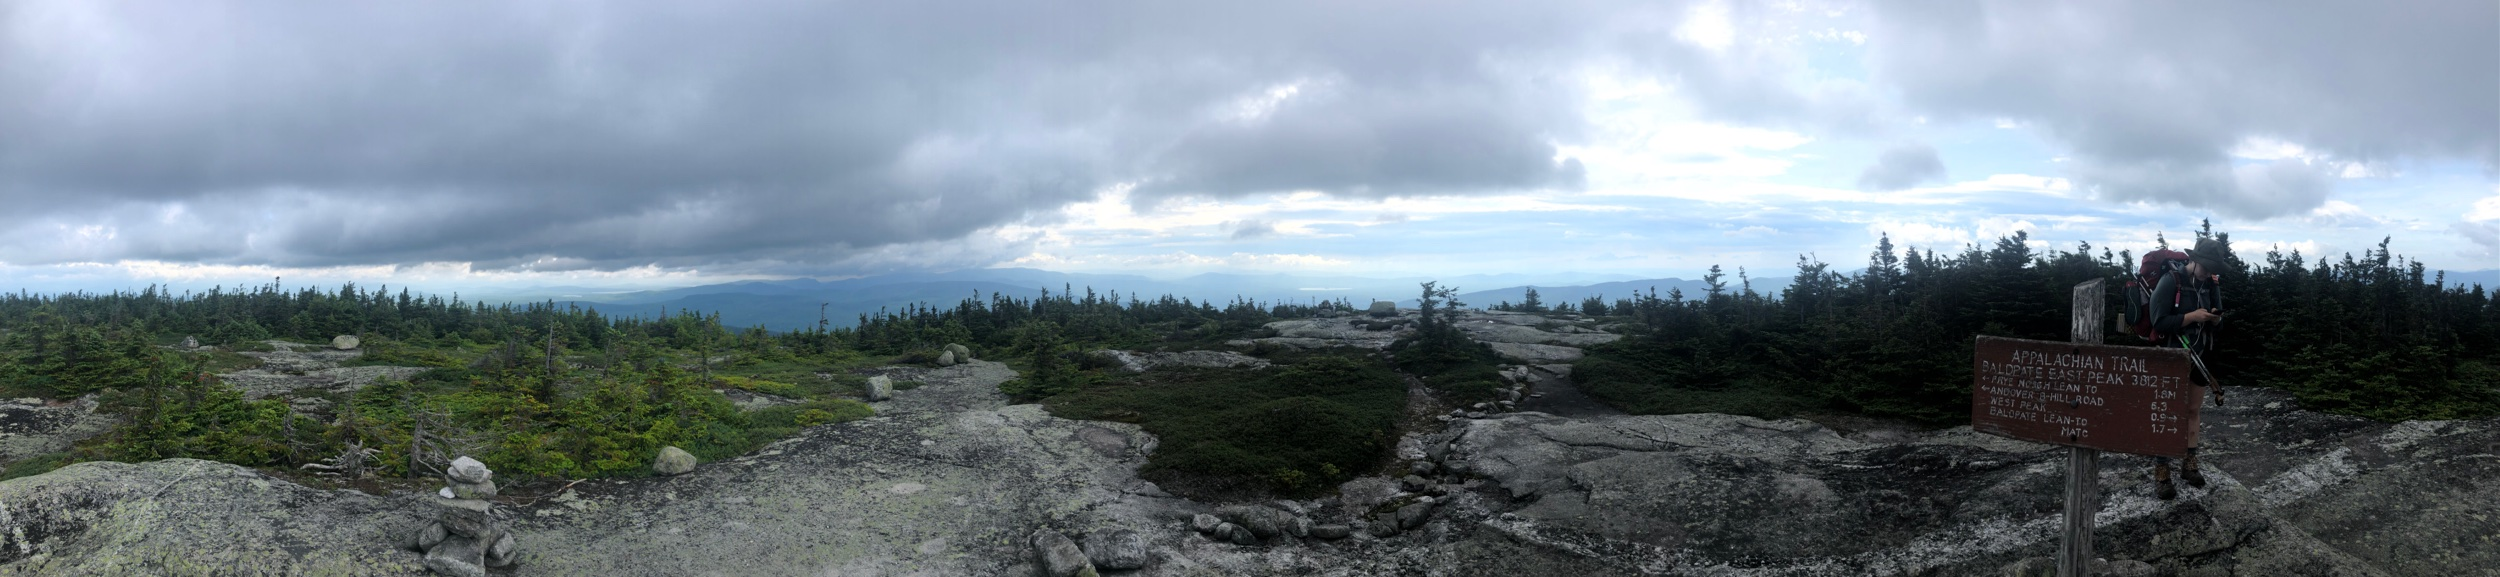 Baldpate Mt. East Peak